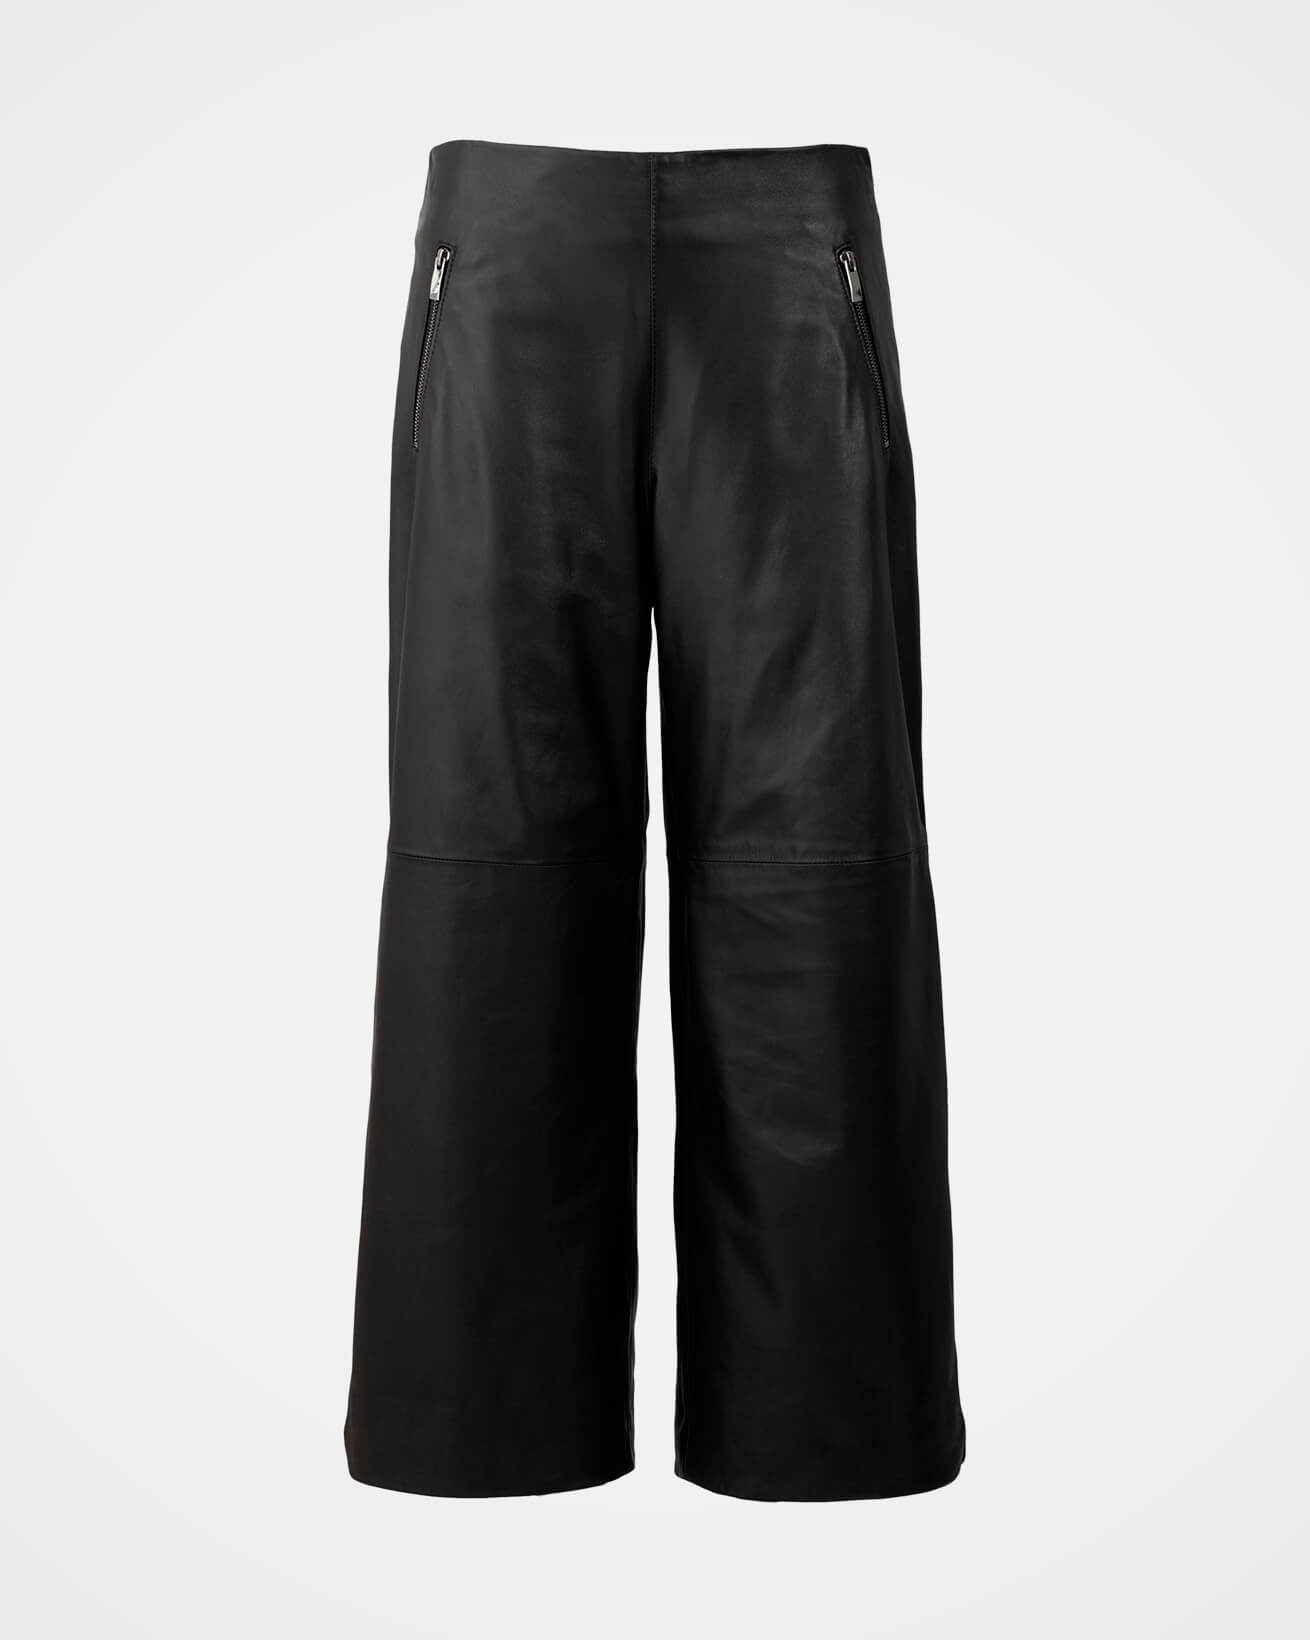 Cropped Wide Leg Leather Trousers - Size 10 - Black - 2045